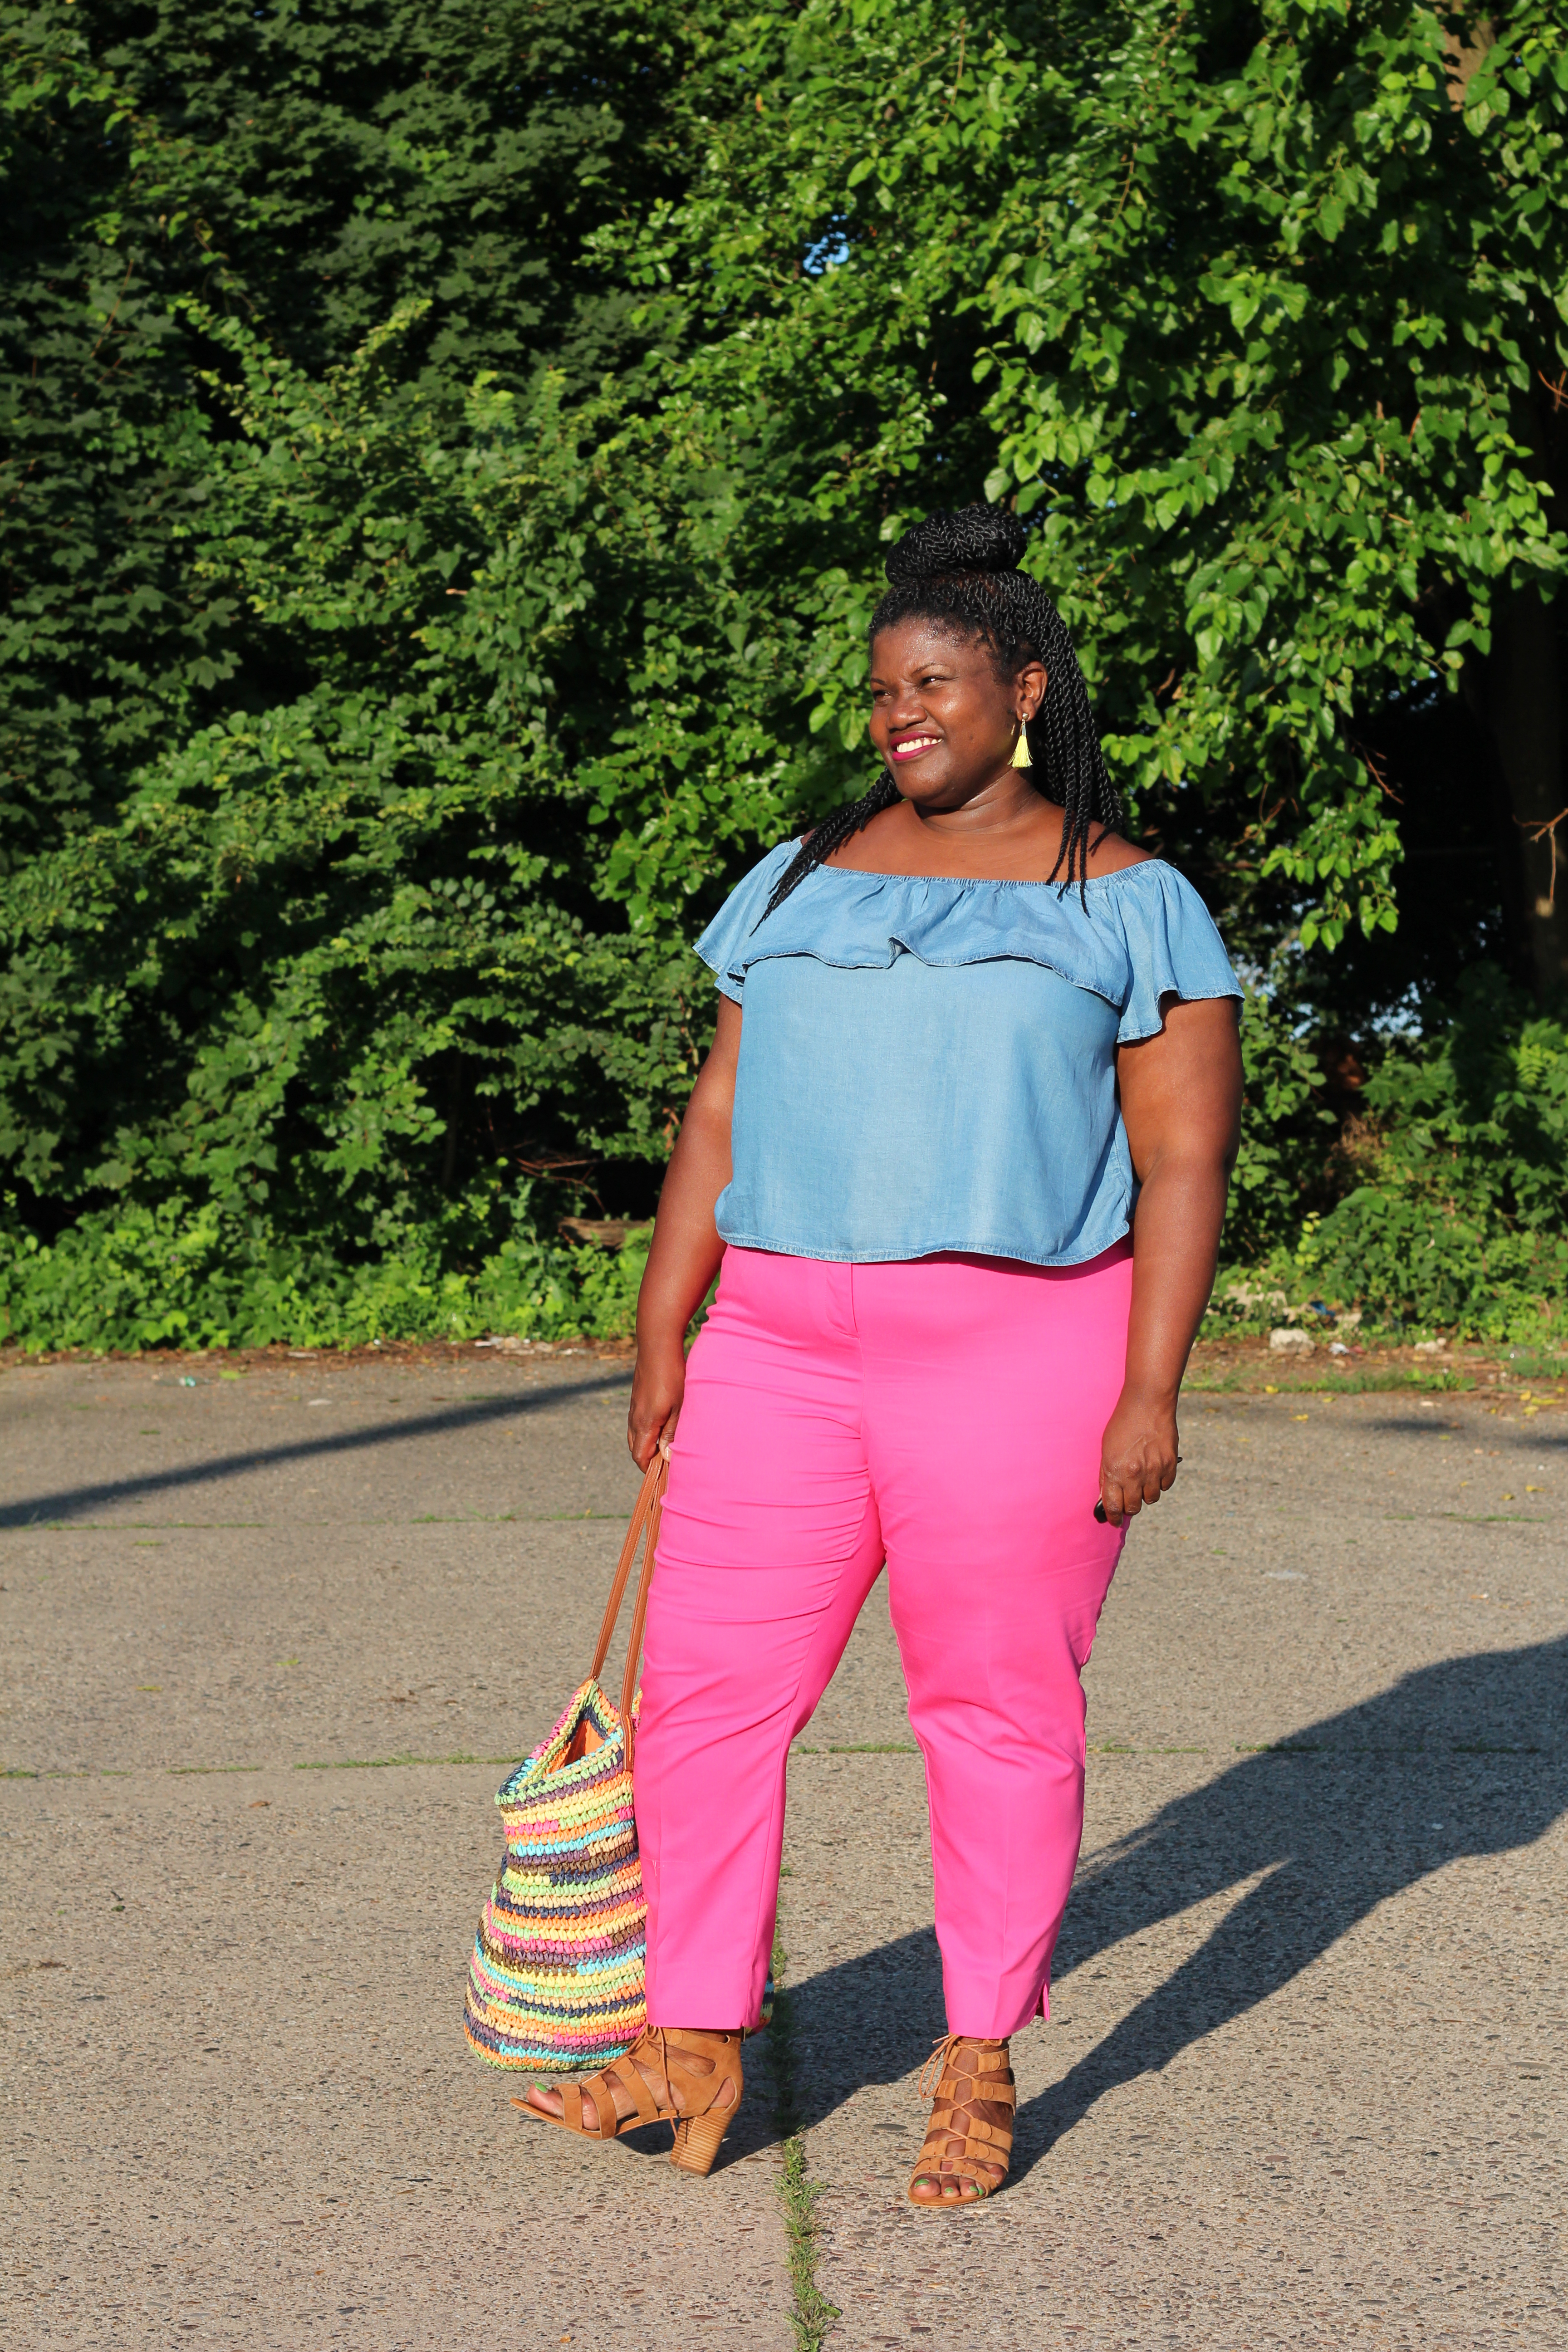 plus size, plus size blogs, plus size bloggers, lane bryant pants, ankle pants, ankle pants for plus size women, off the shoulder tops, denim tops, off the shoulder denim tops, straw bags, old navy, asos, curvy, curvy women, curvy girls, summer styles, summer